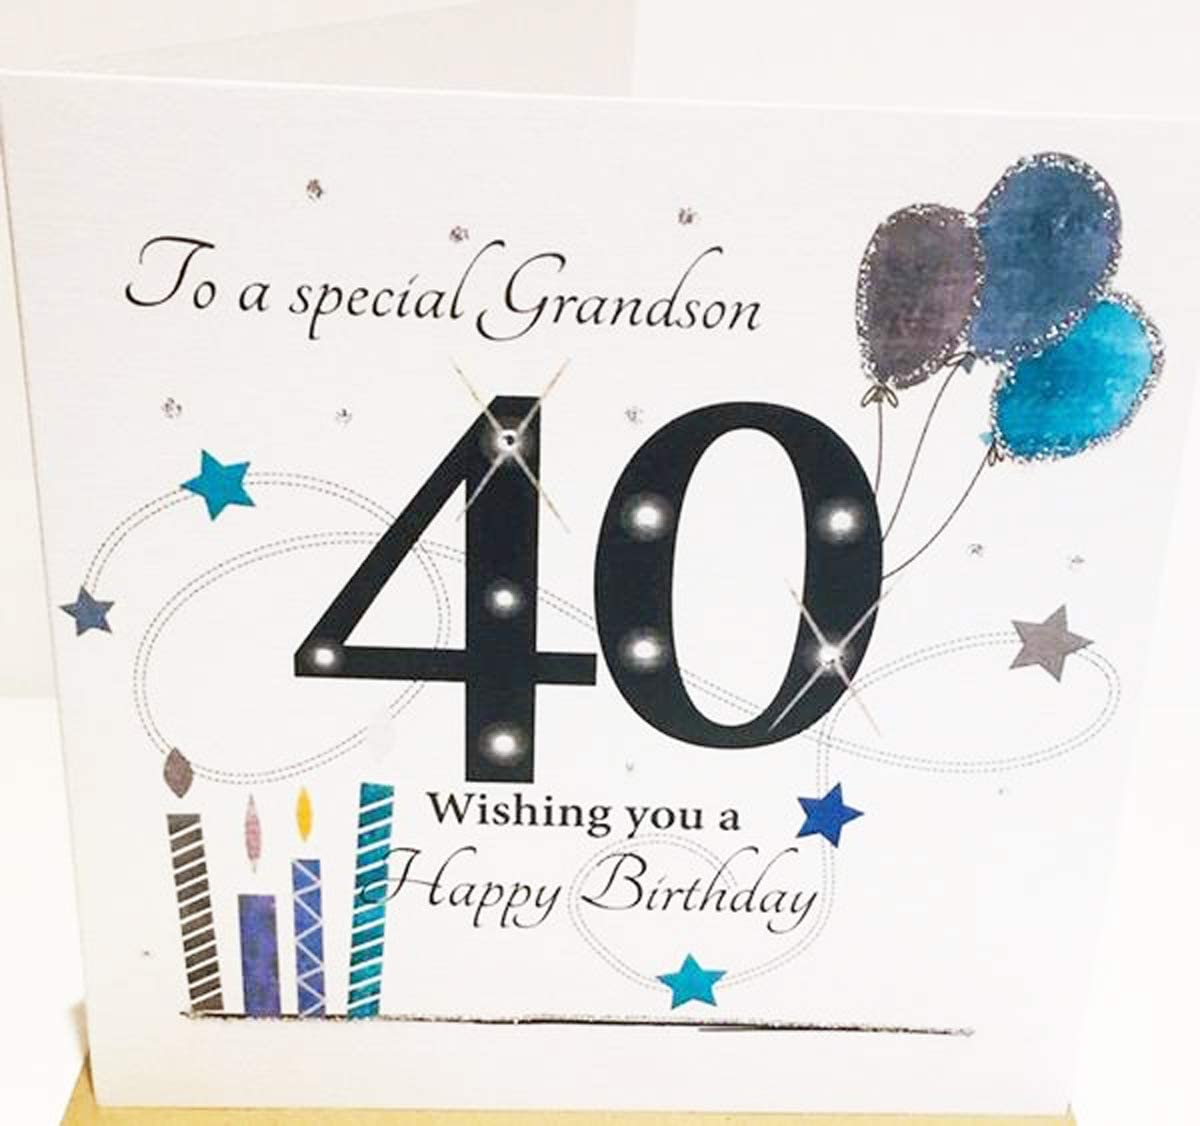 GRANDSON LARGE BIRTHDAY CARD GREAT QUALITY 2 DESIGNS TO CHOOSE FROM